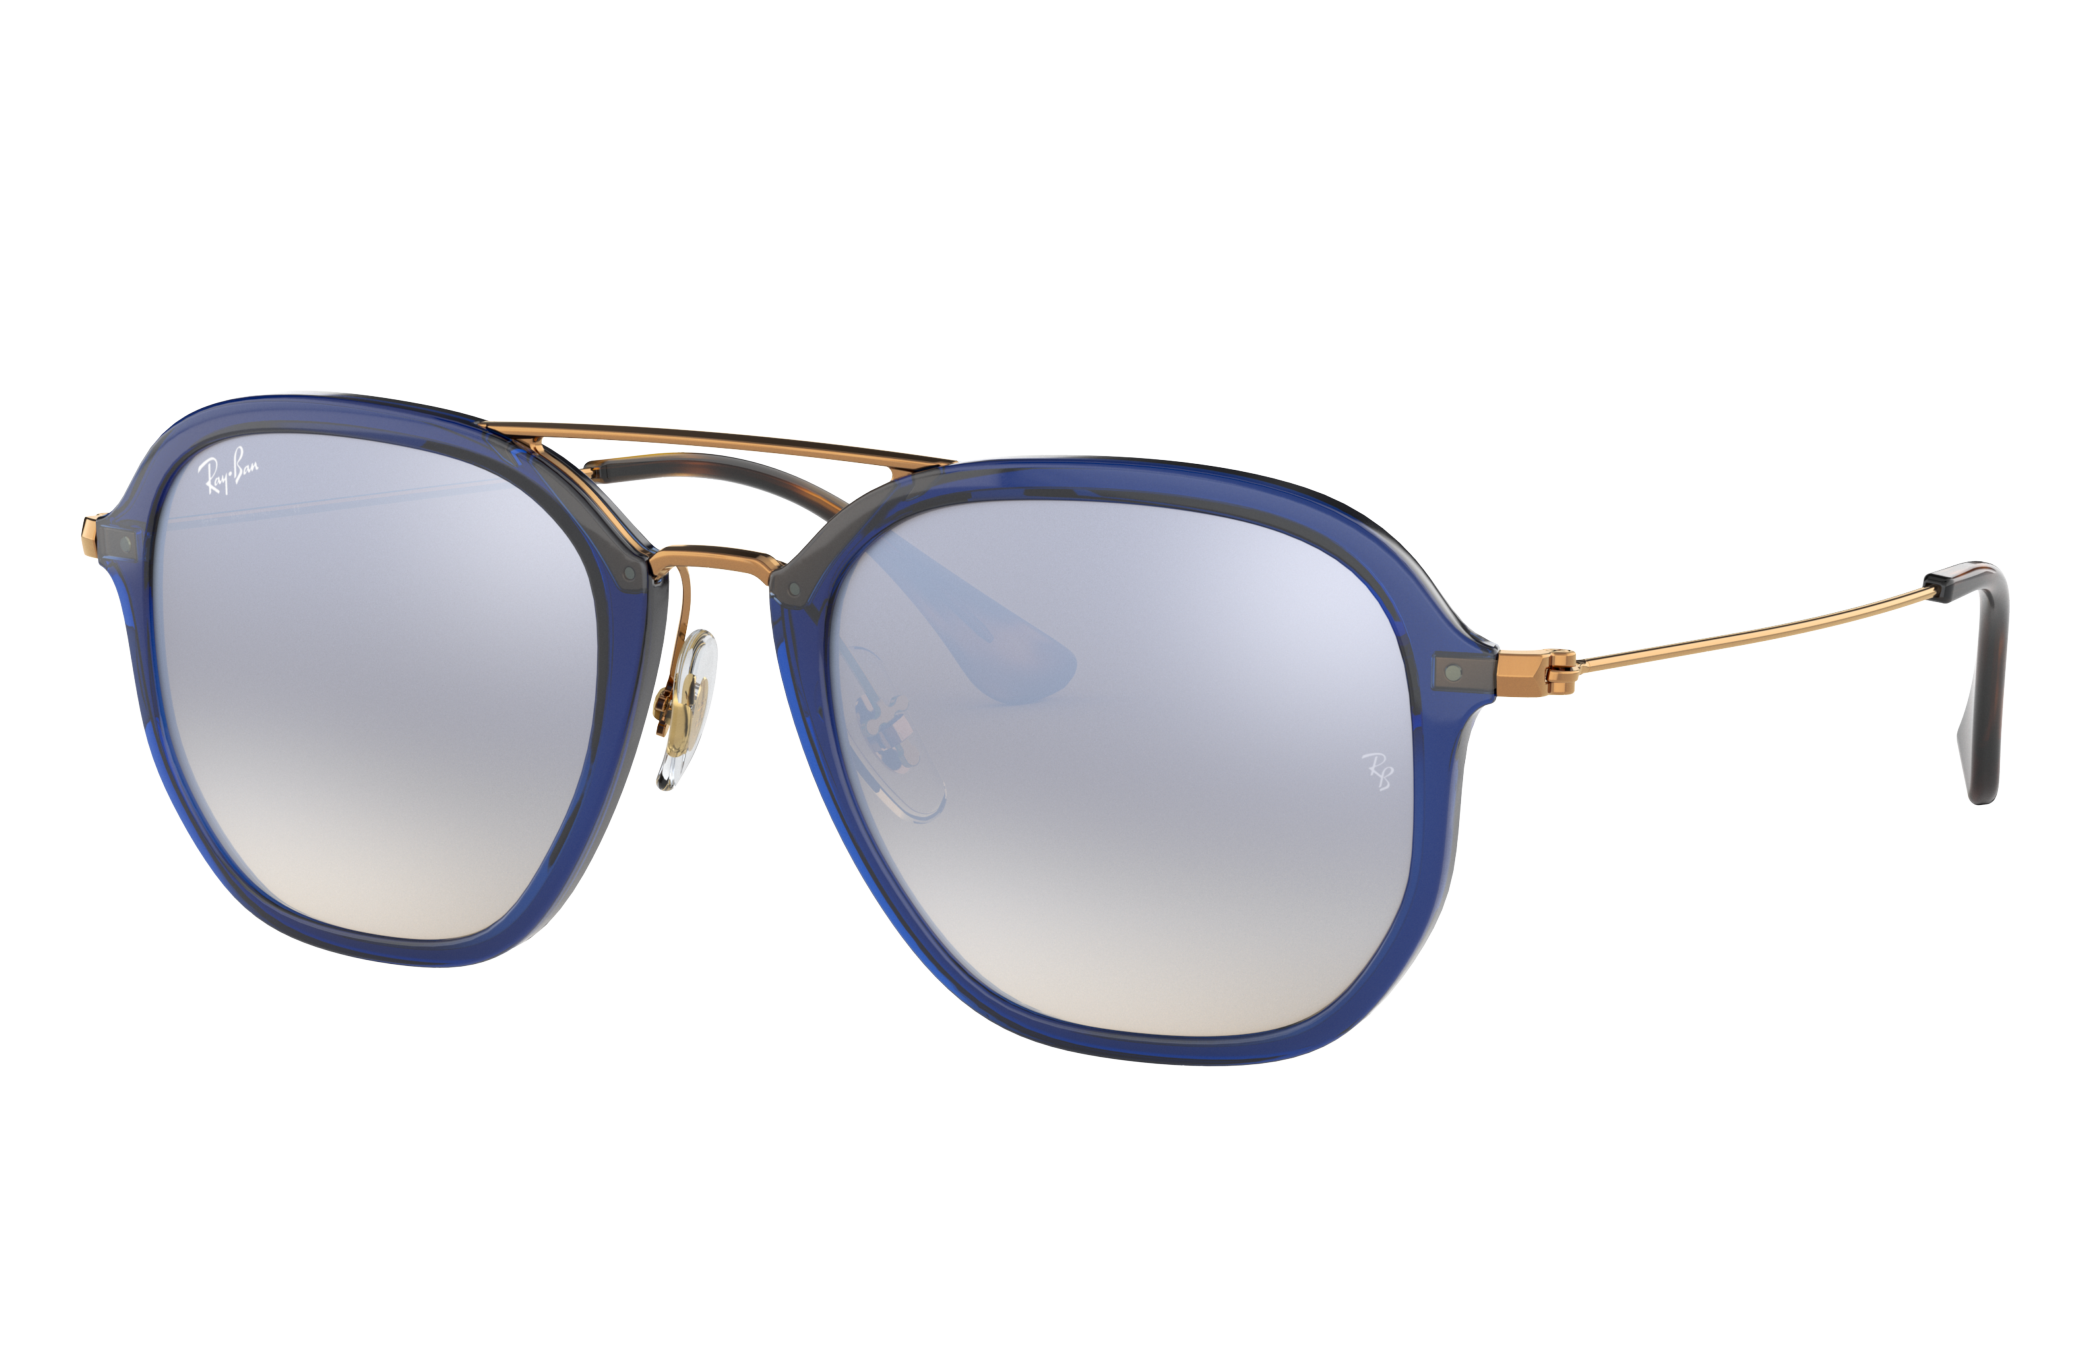 Ray-Ban Rb4273 Bronze-Copper, Gray Lenses - RB4273